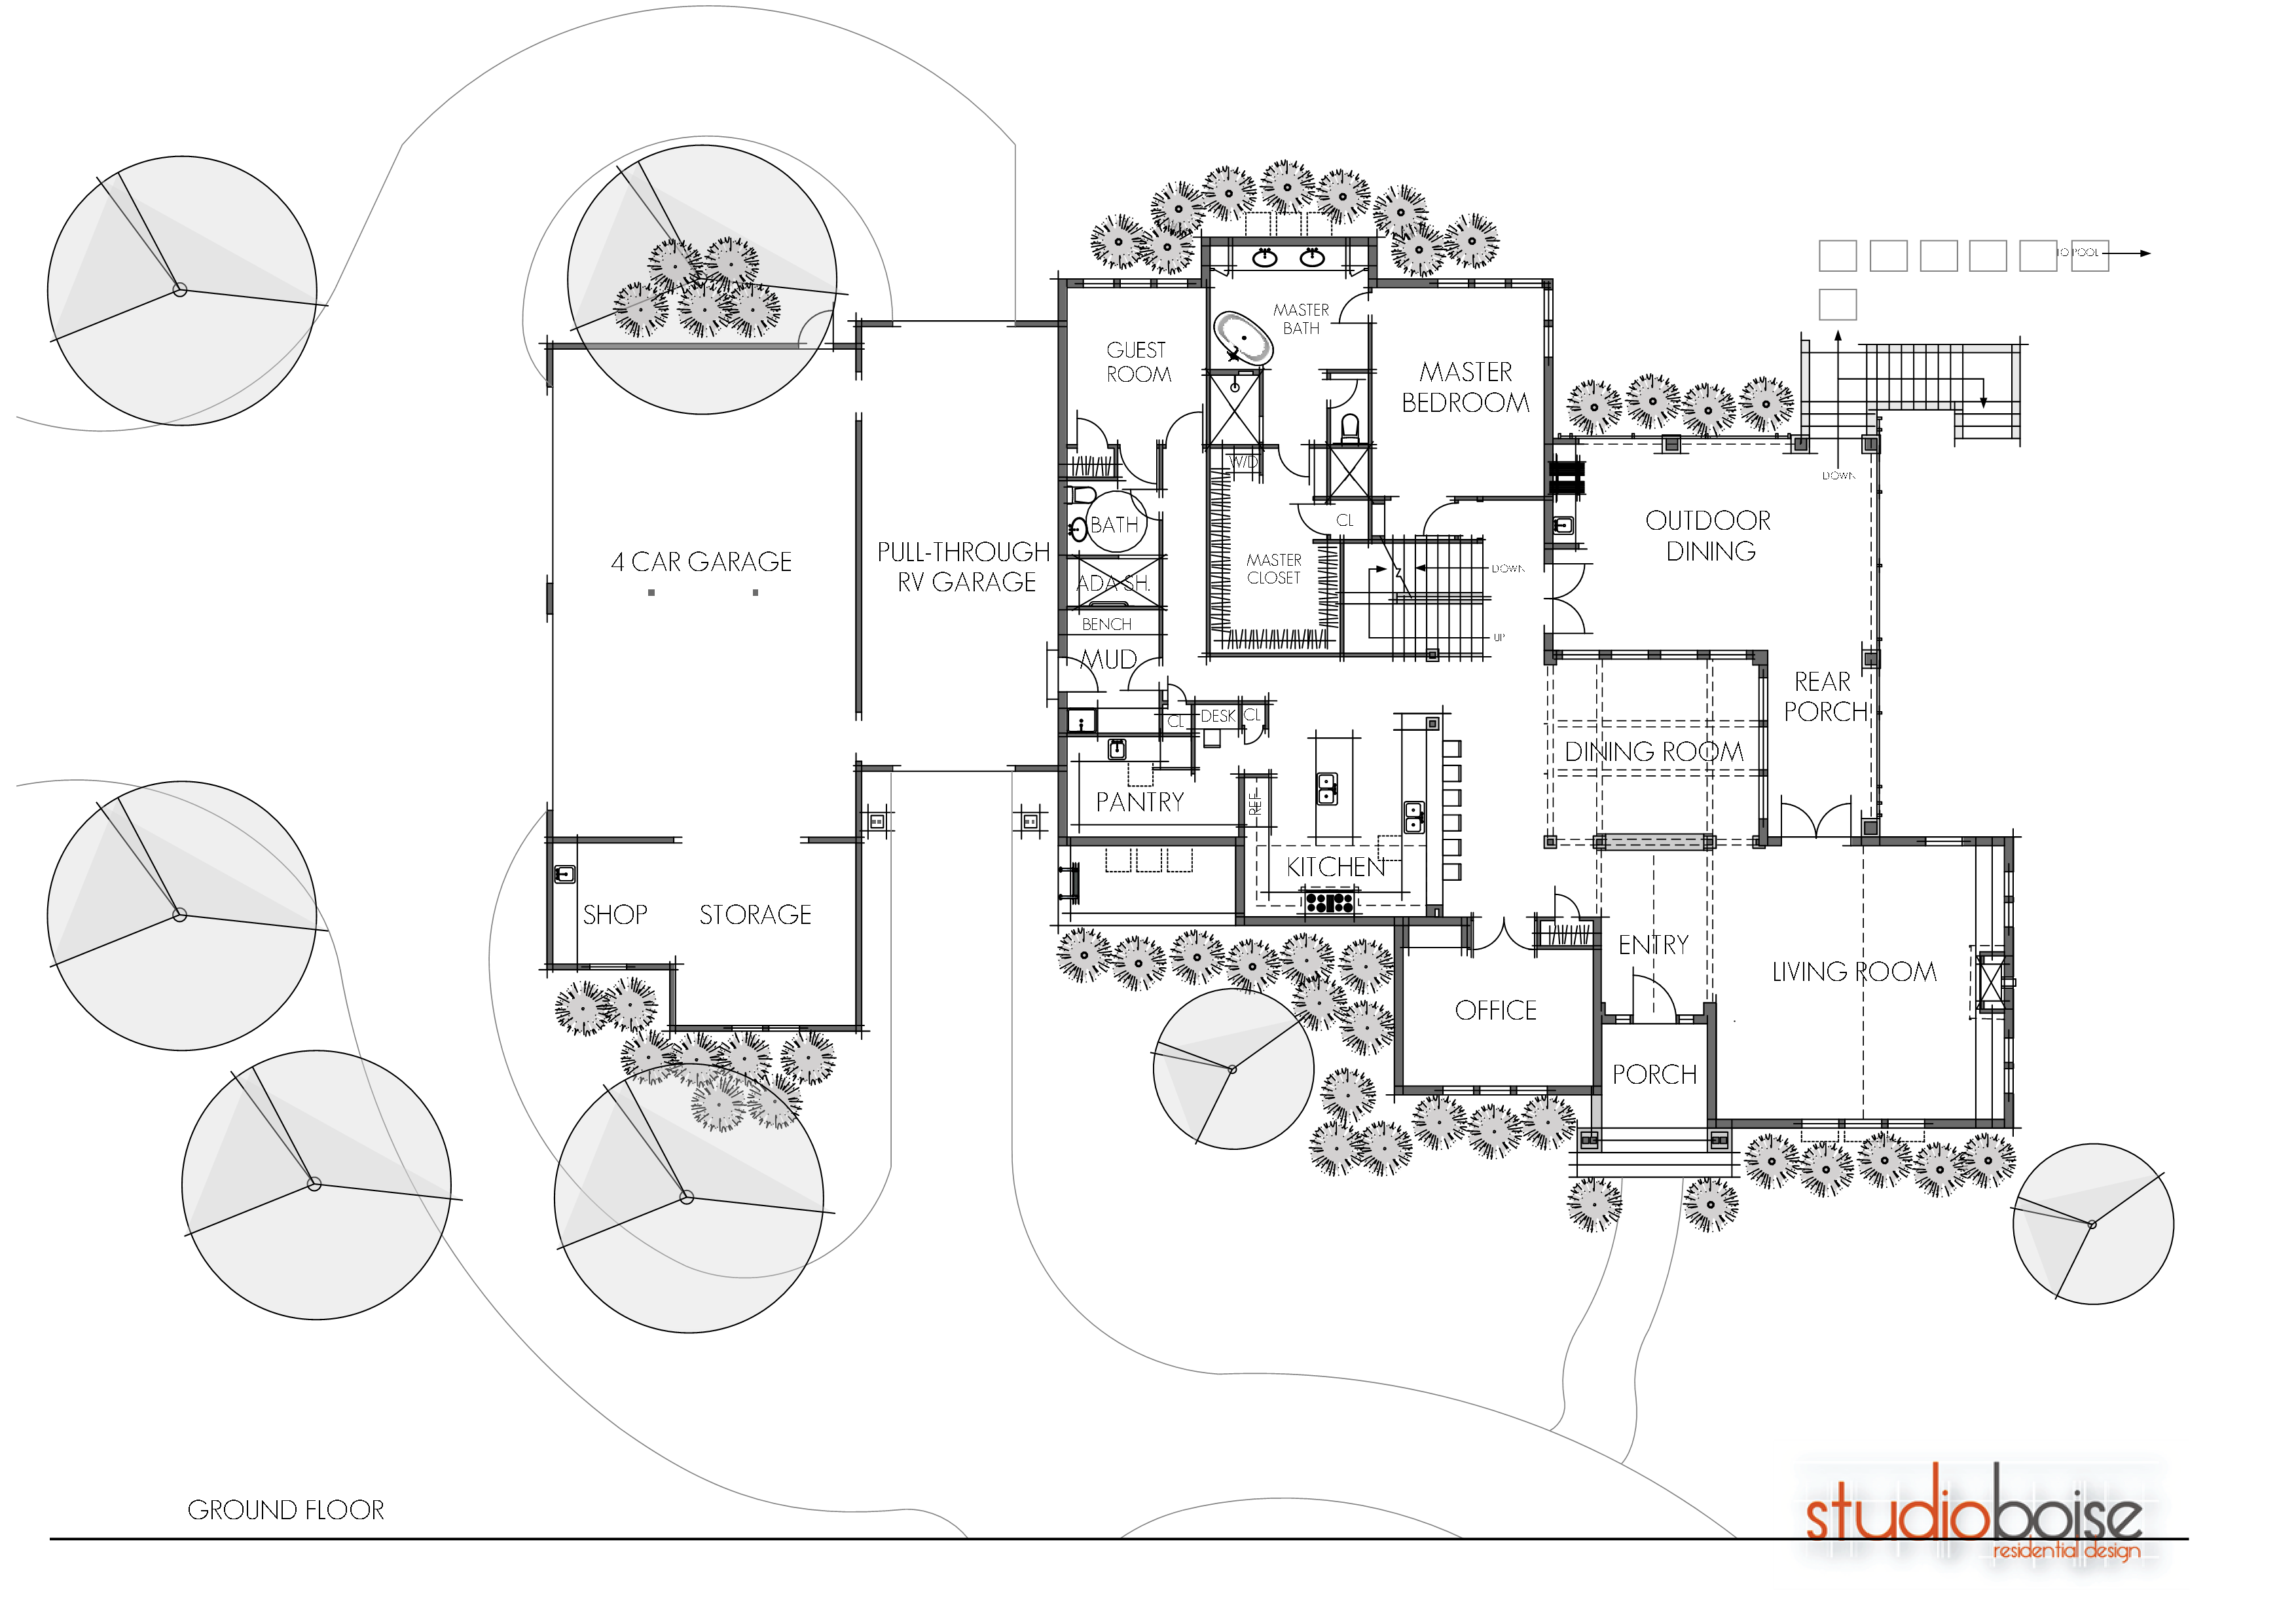 Studio boise residential and architectural design home for Twin home floor plans